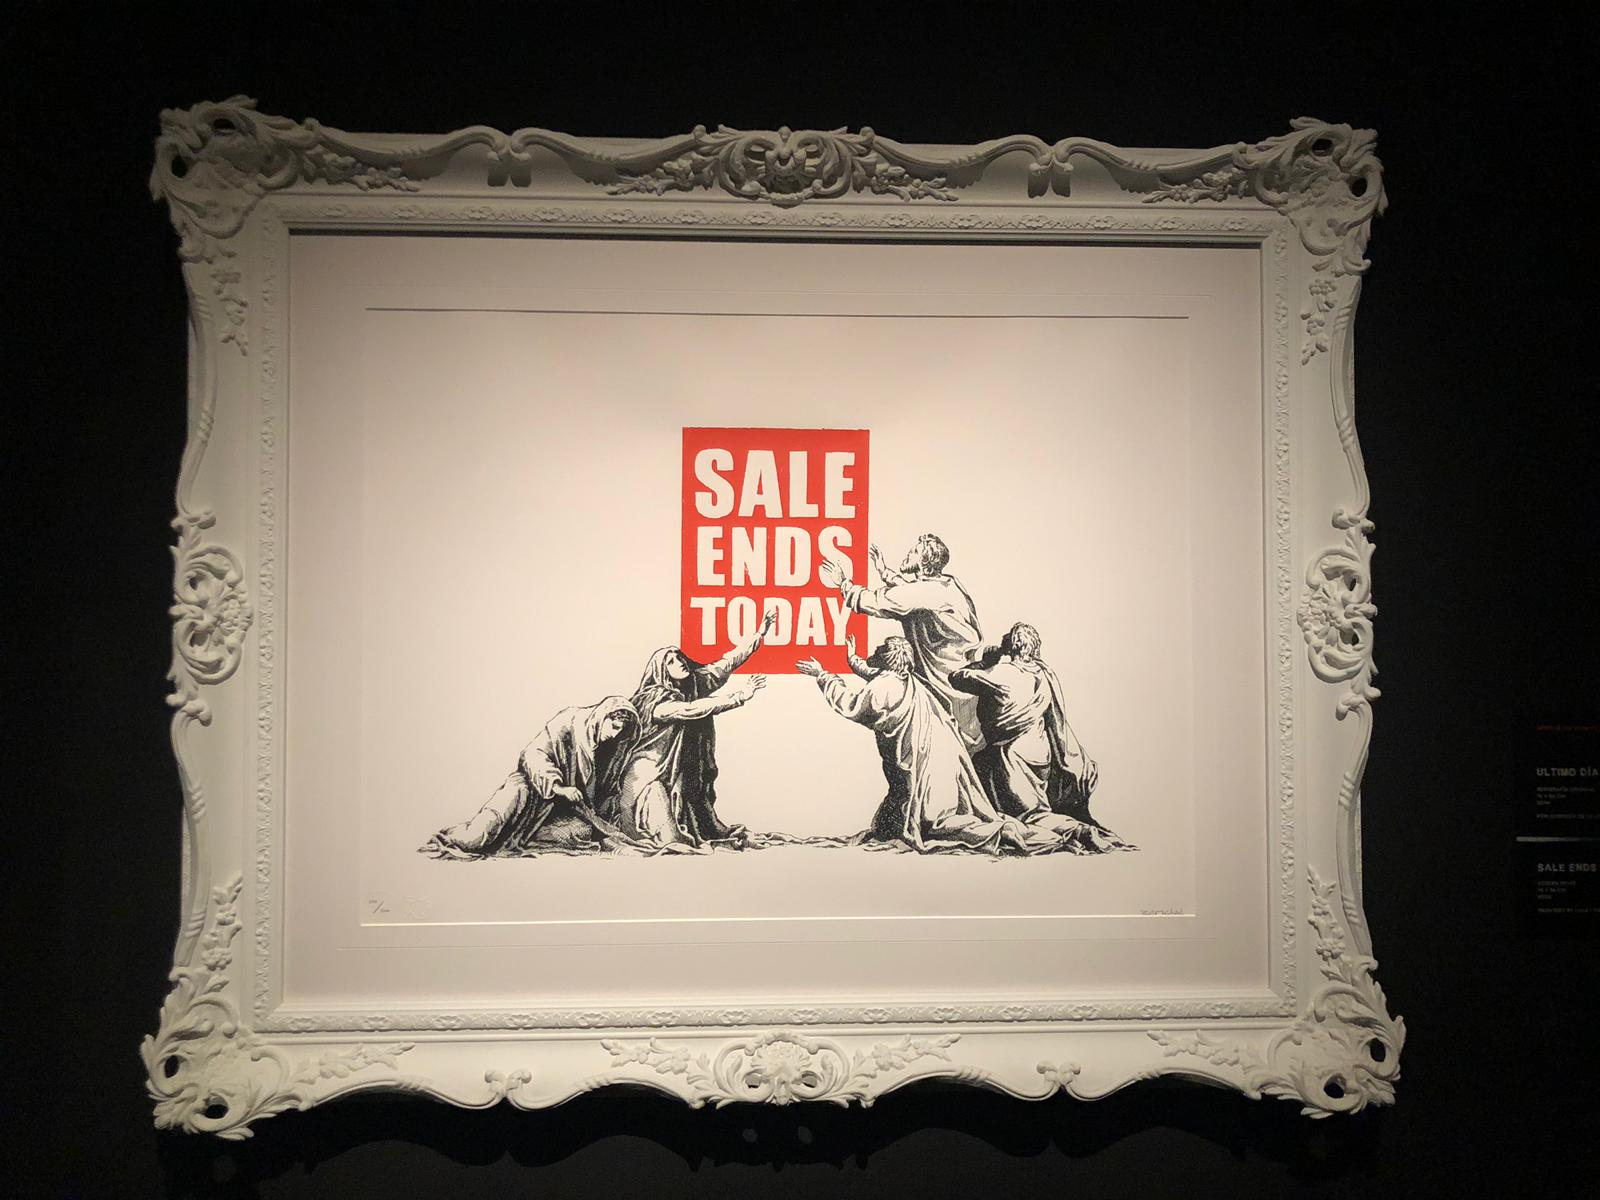 Sale ends today (2007)